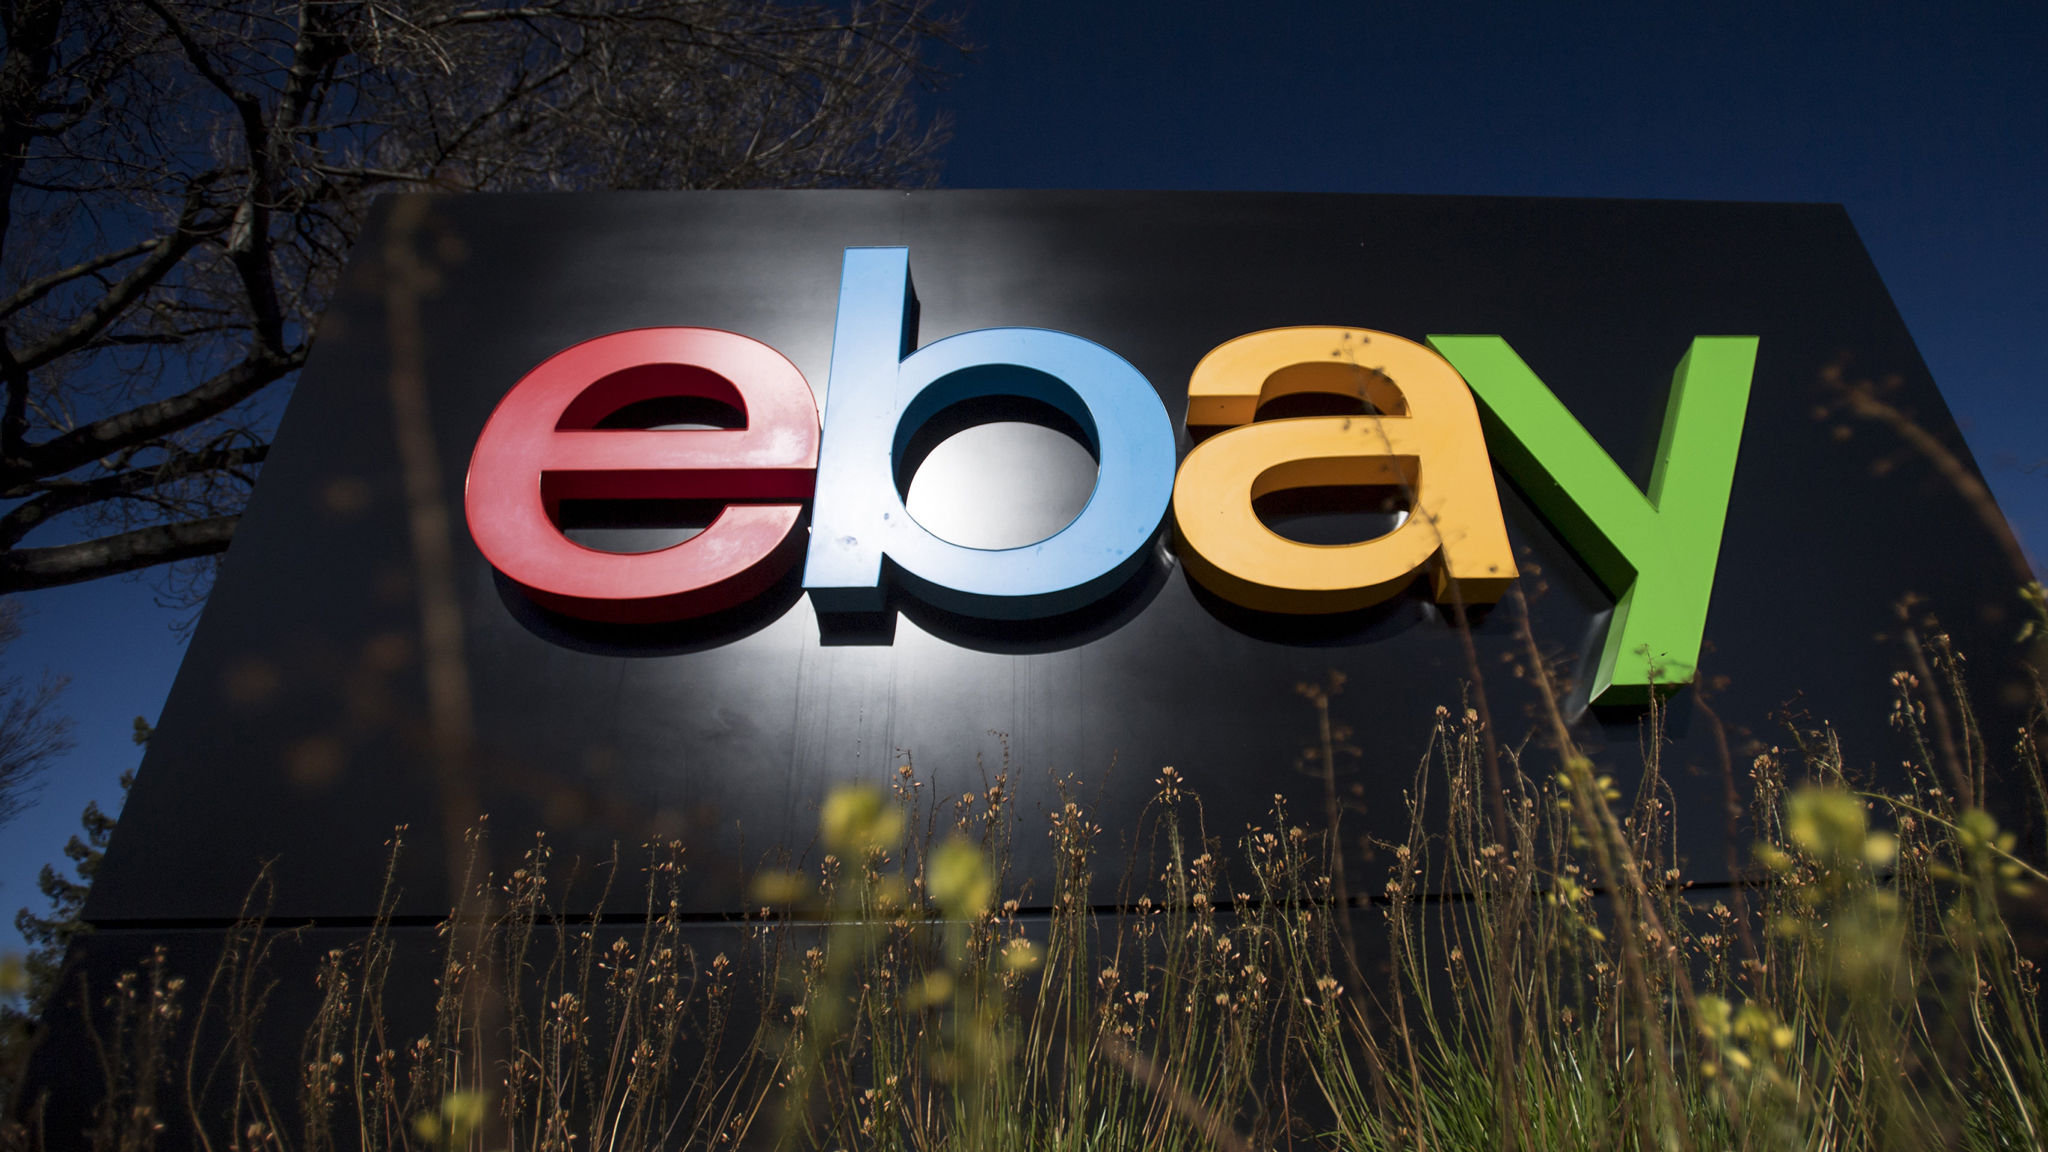 eBay to exit Facebook's Libra cryptocurrency